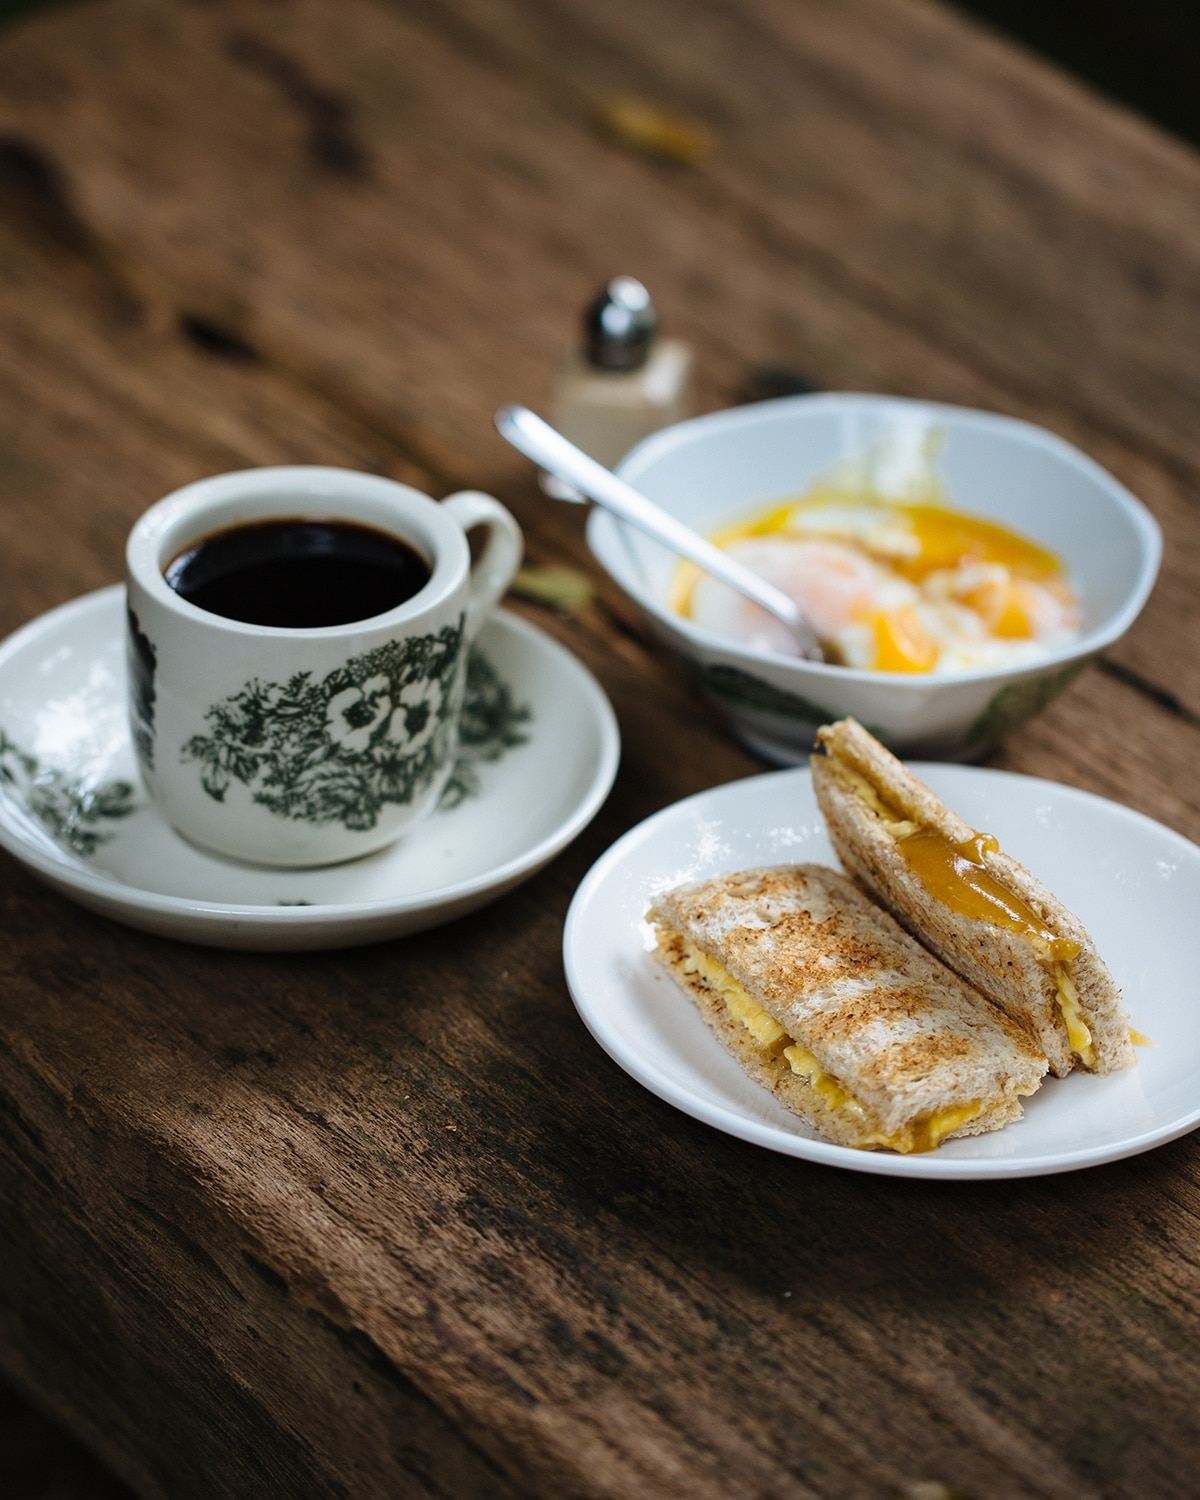 Kaya Toast With Half Cooked Eggs And Hainanese Coffee